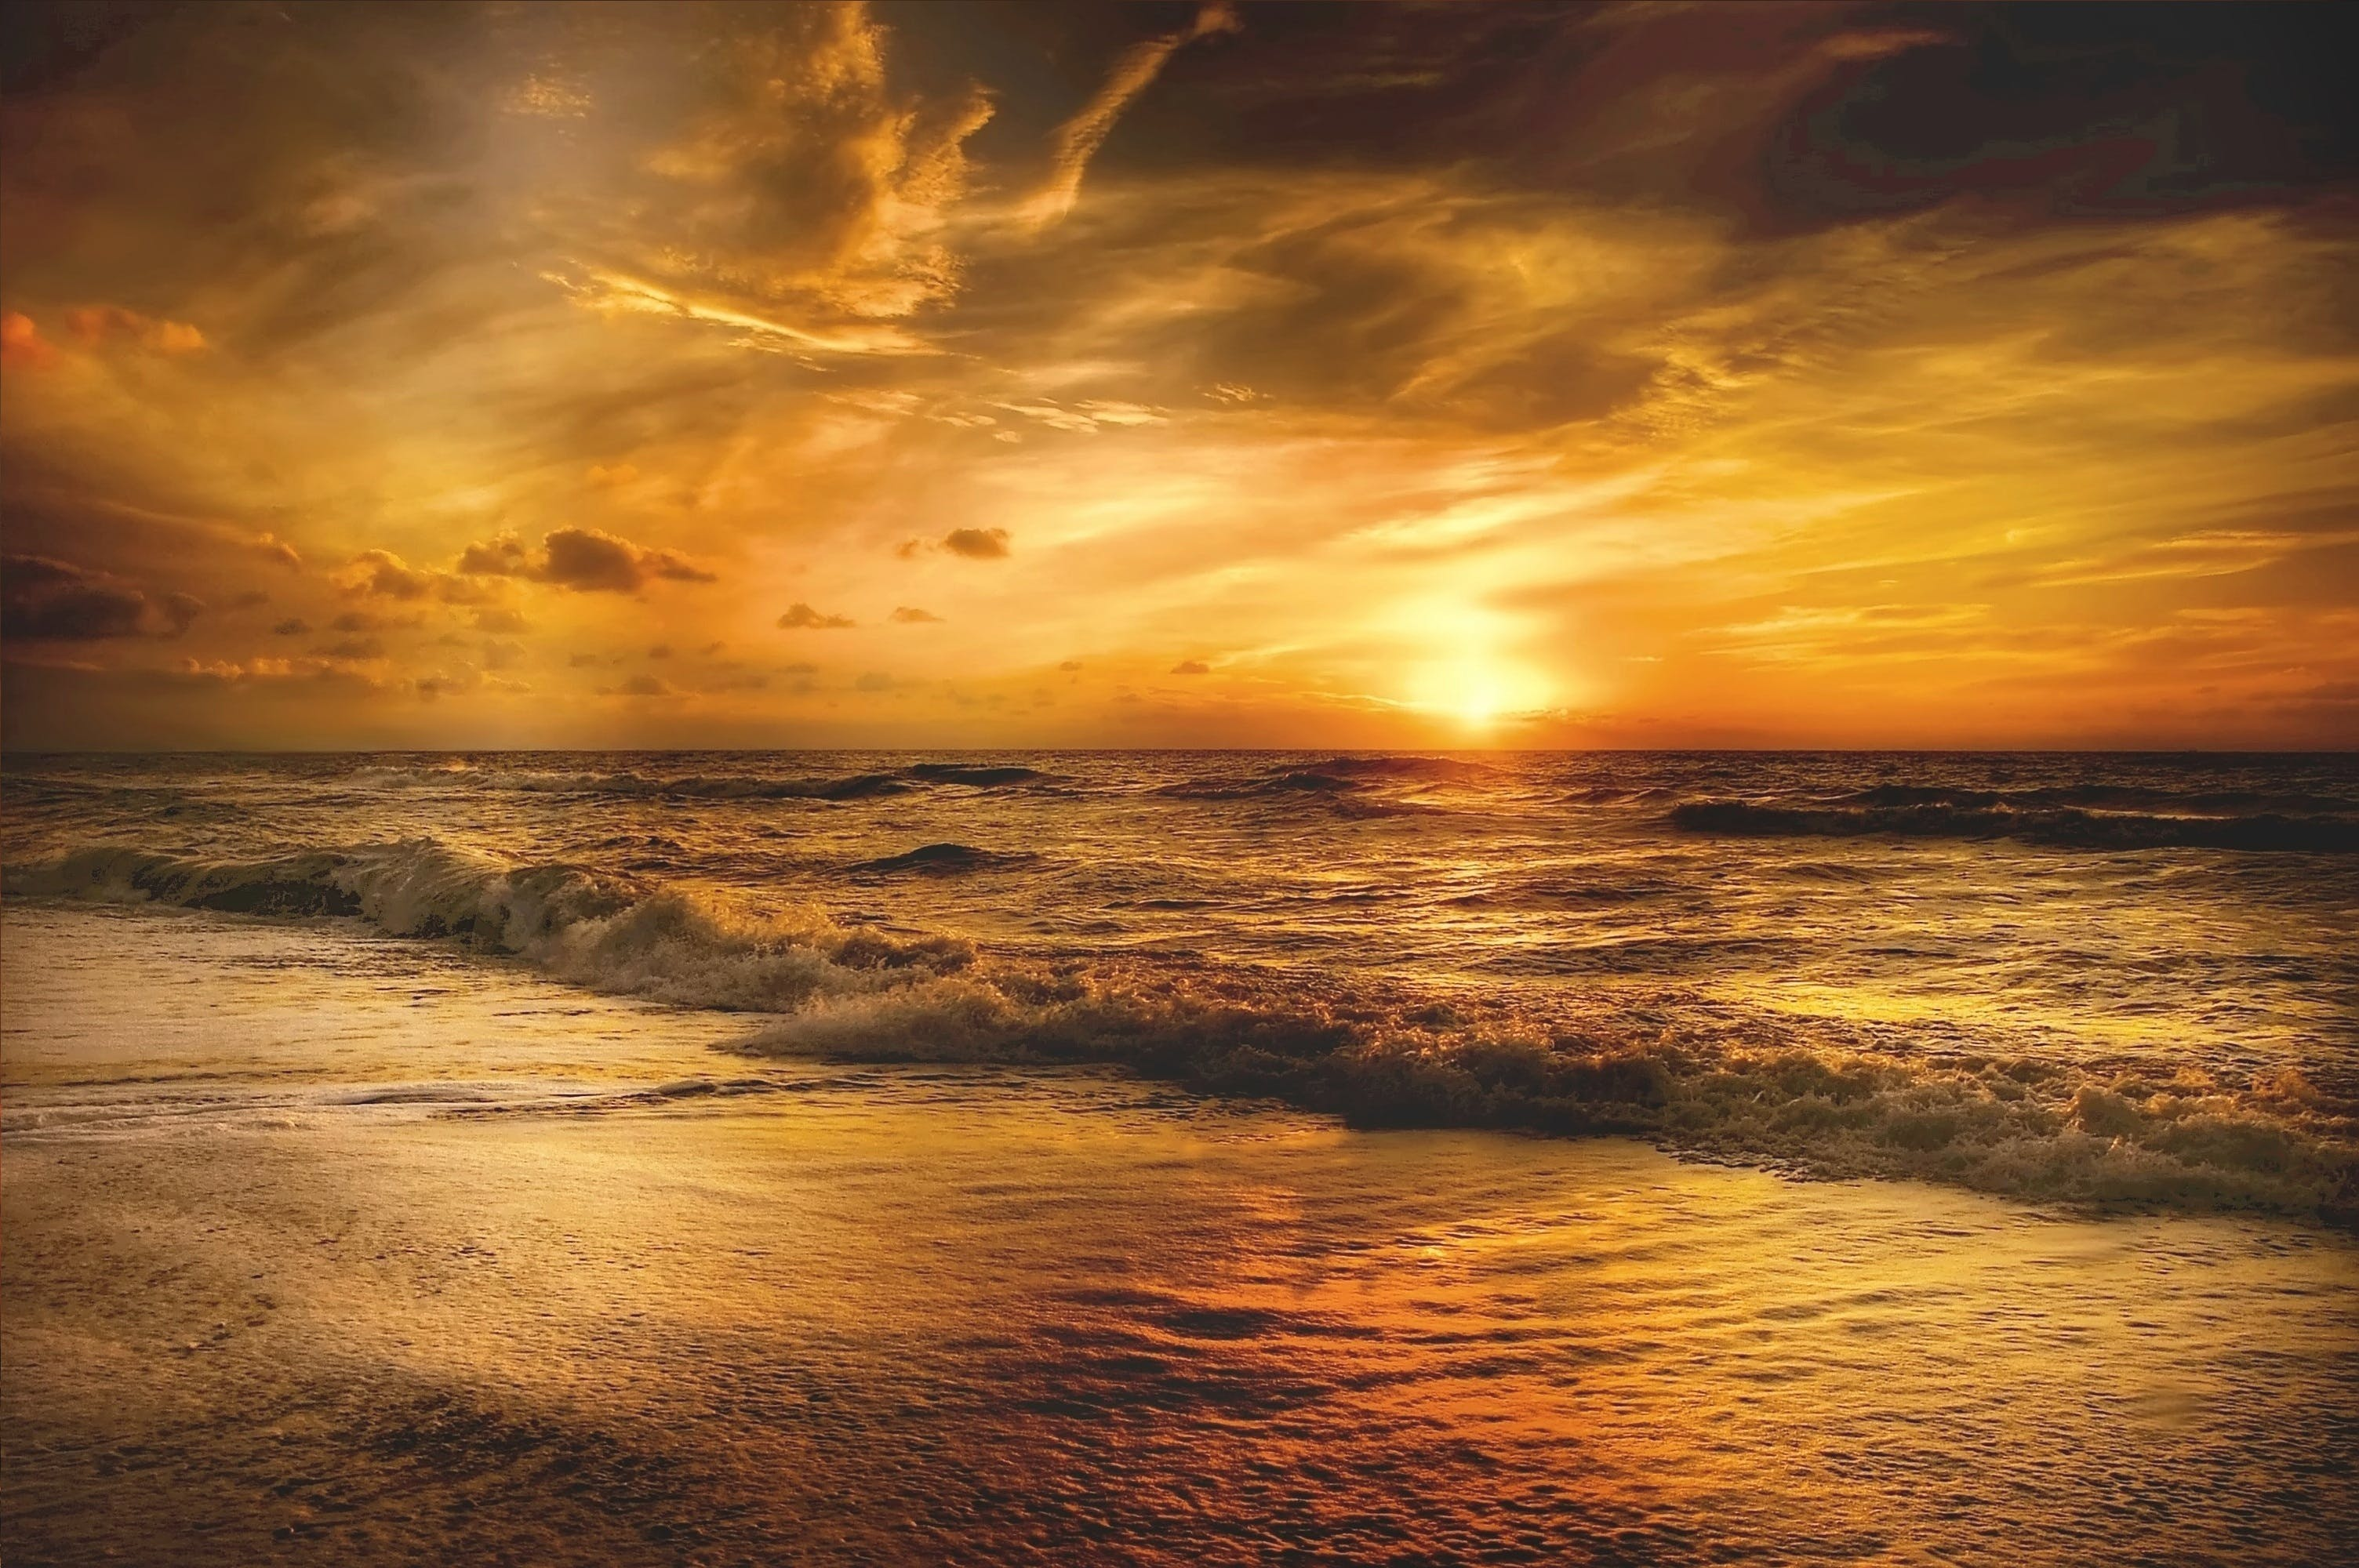 Golden-hour Photography of Body of Water